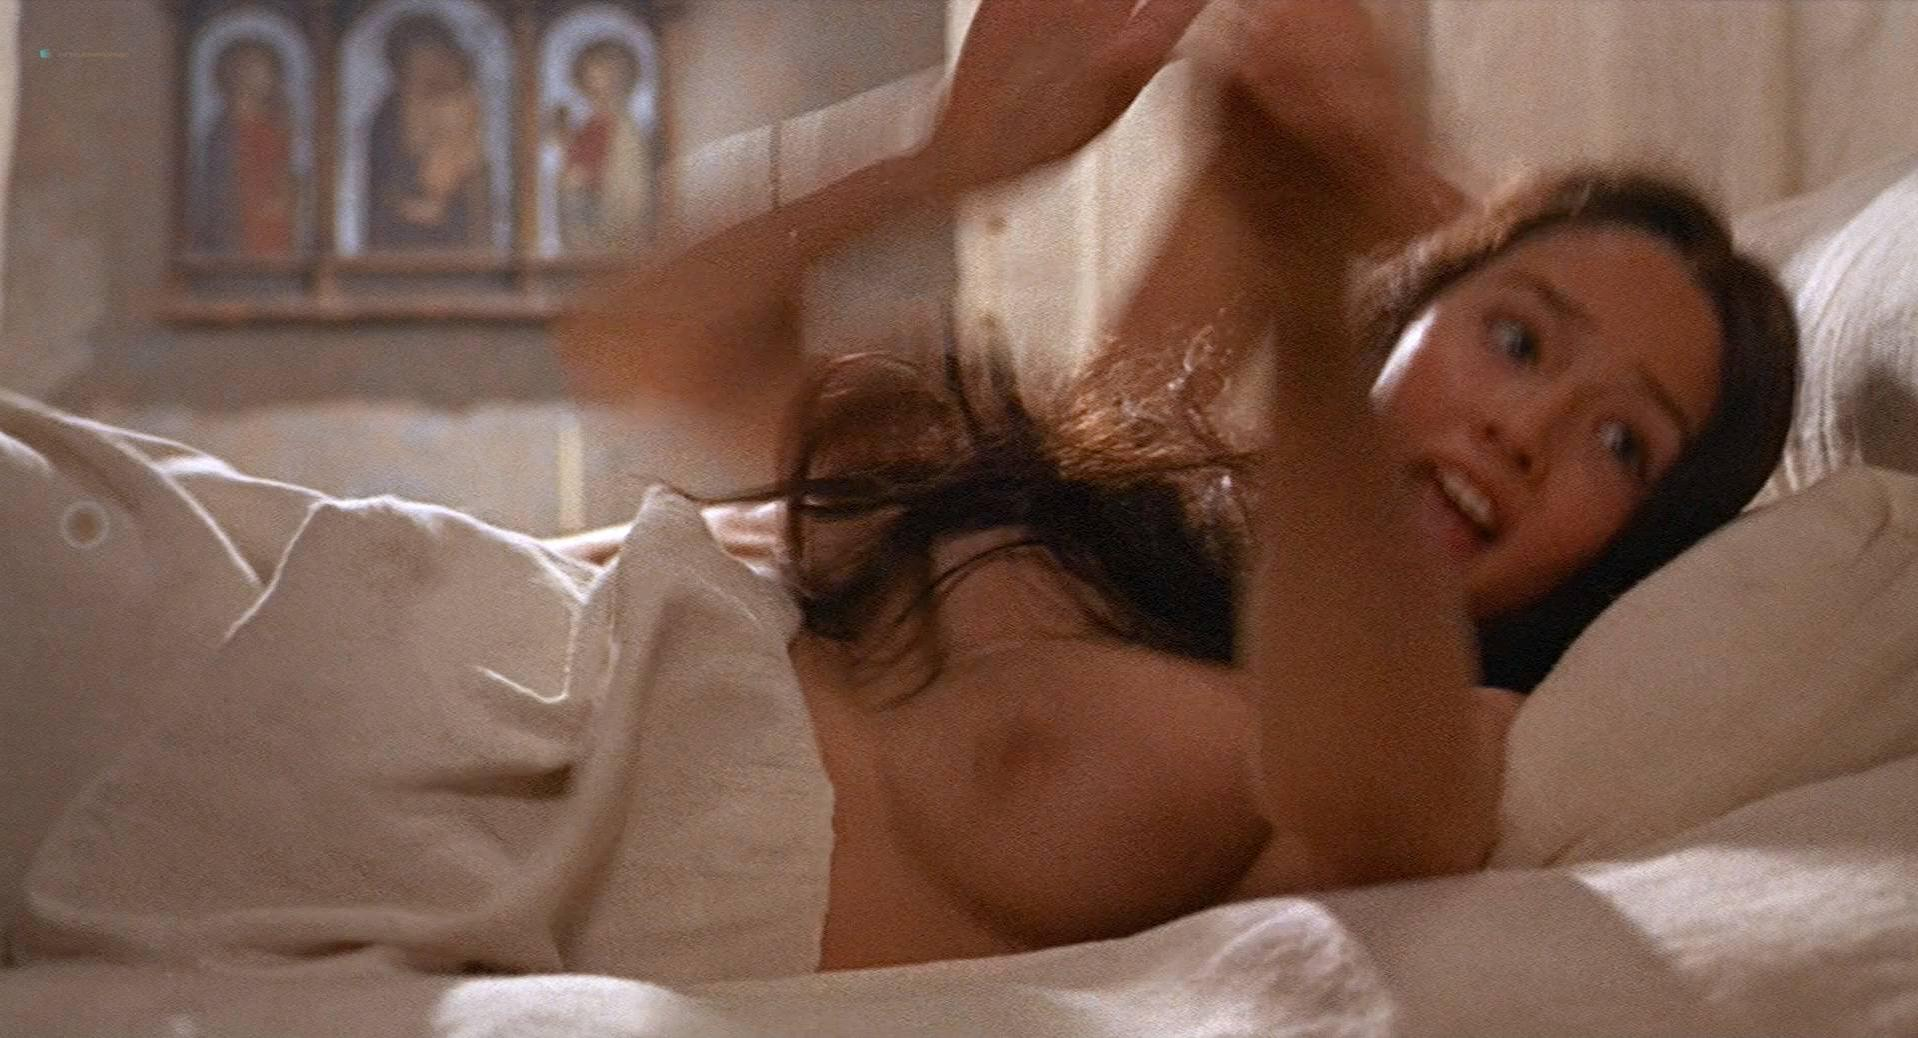 Romeo and juliet nude